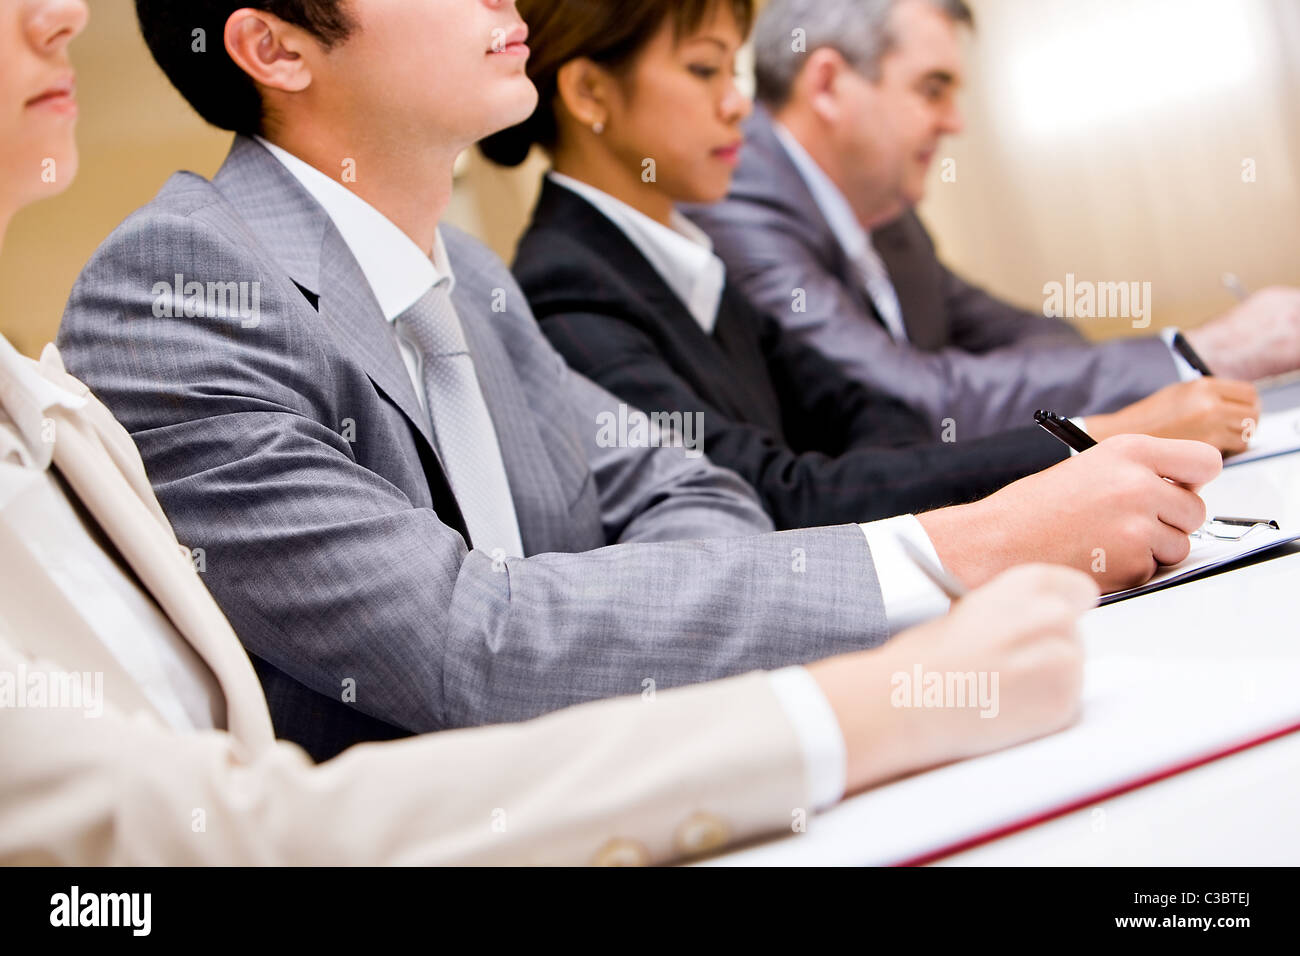 Row of business people making notes during conference - Stock Image